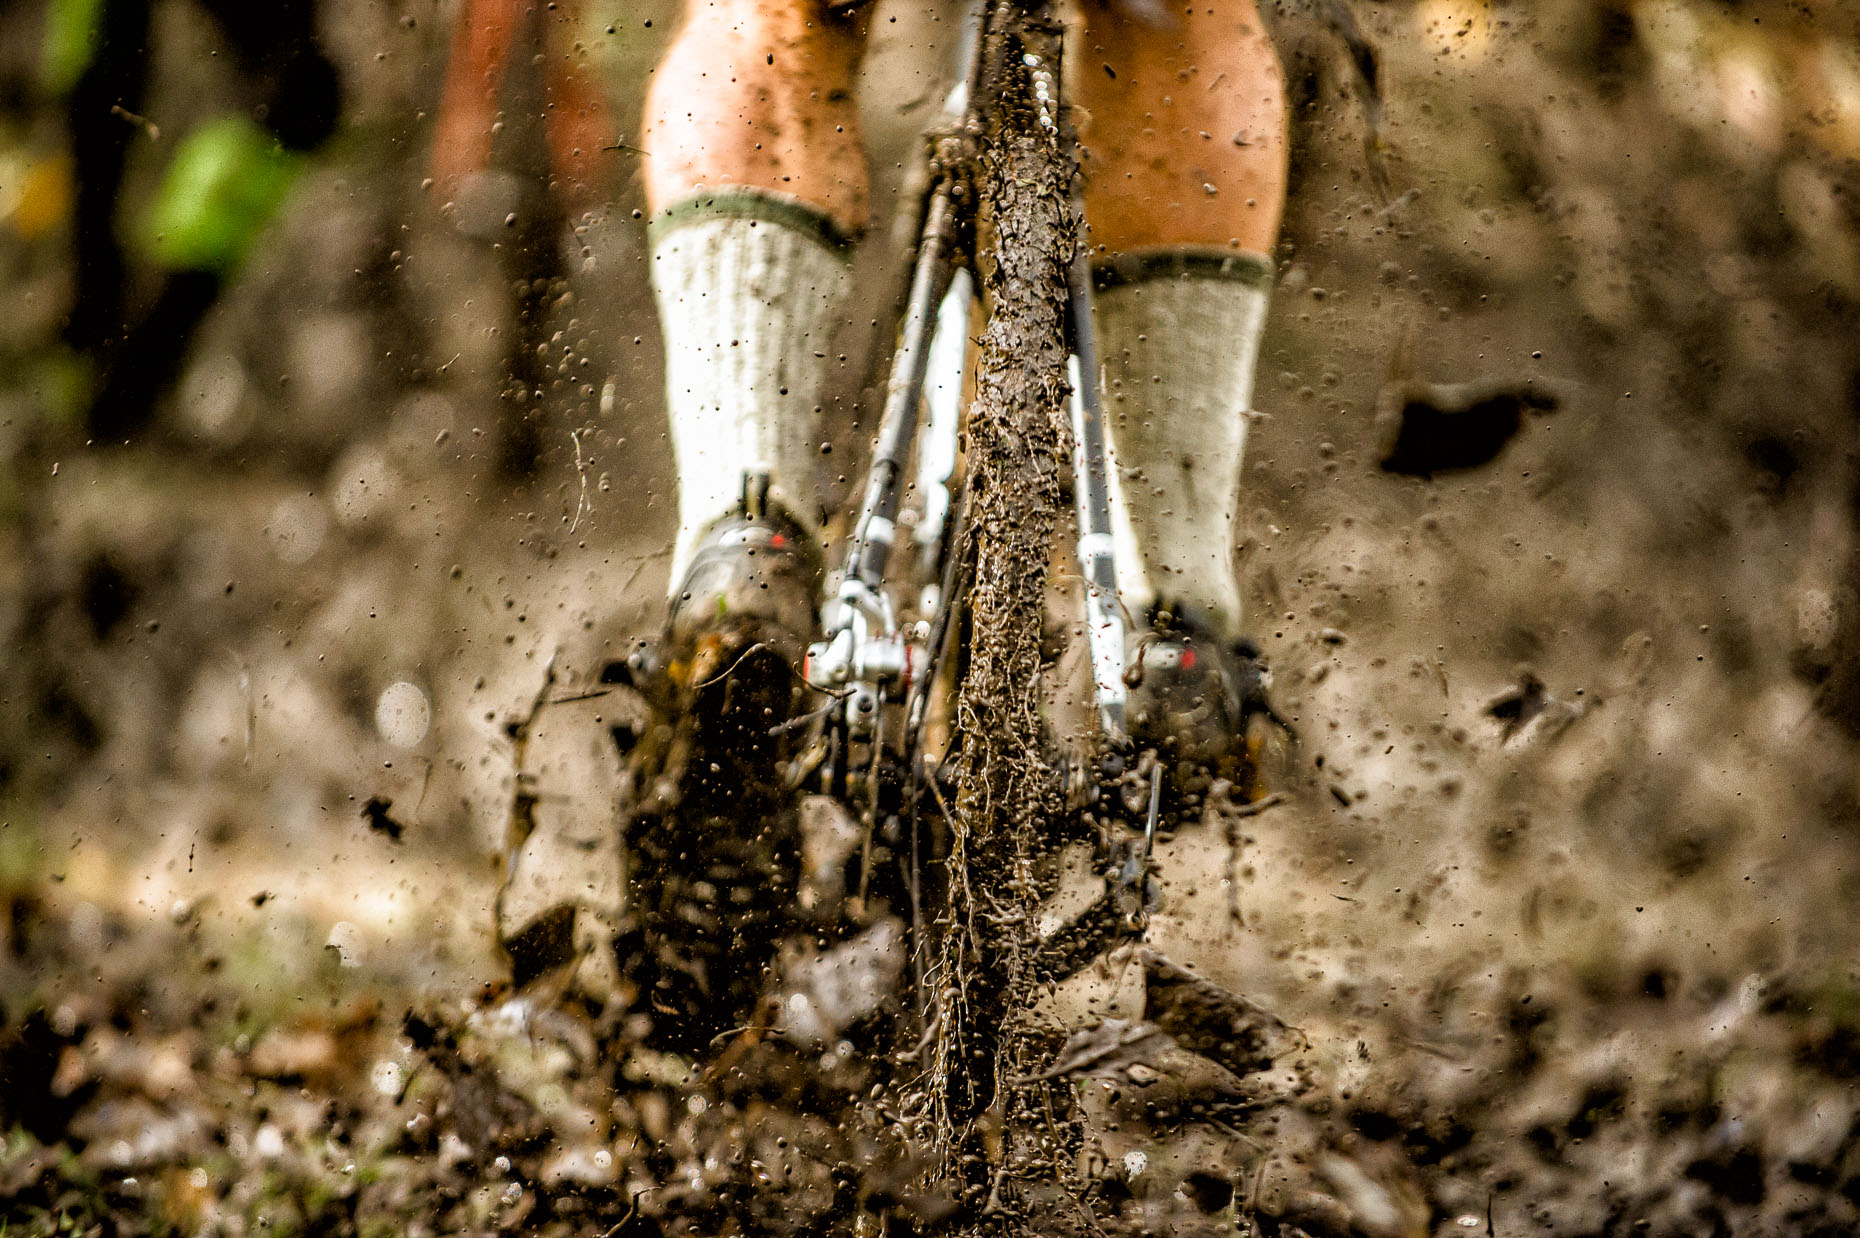 aaron-ingrao-cyclocross-muddy-tire-cross-in-the-park